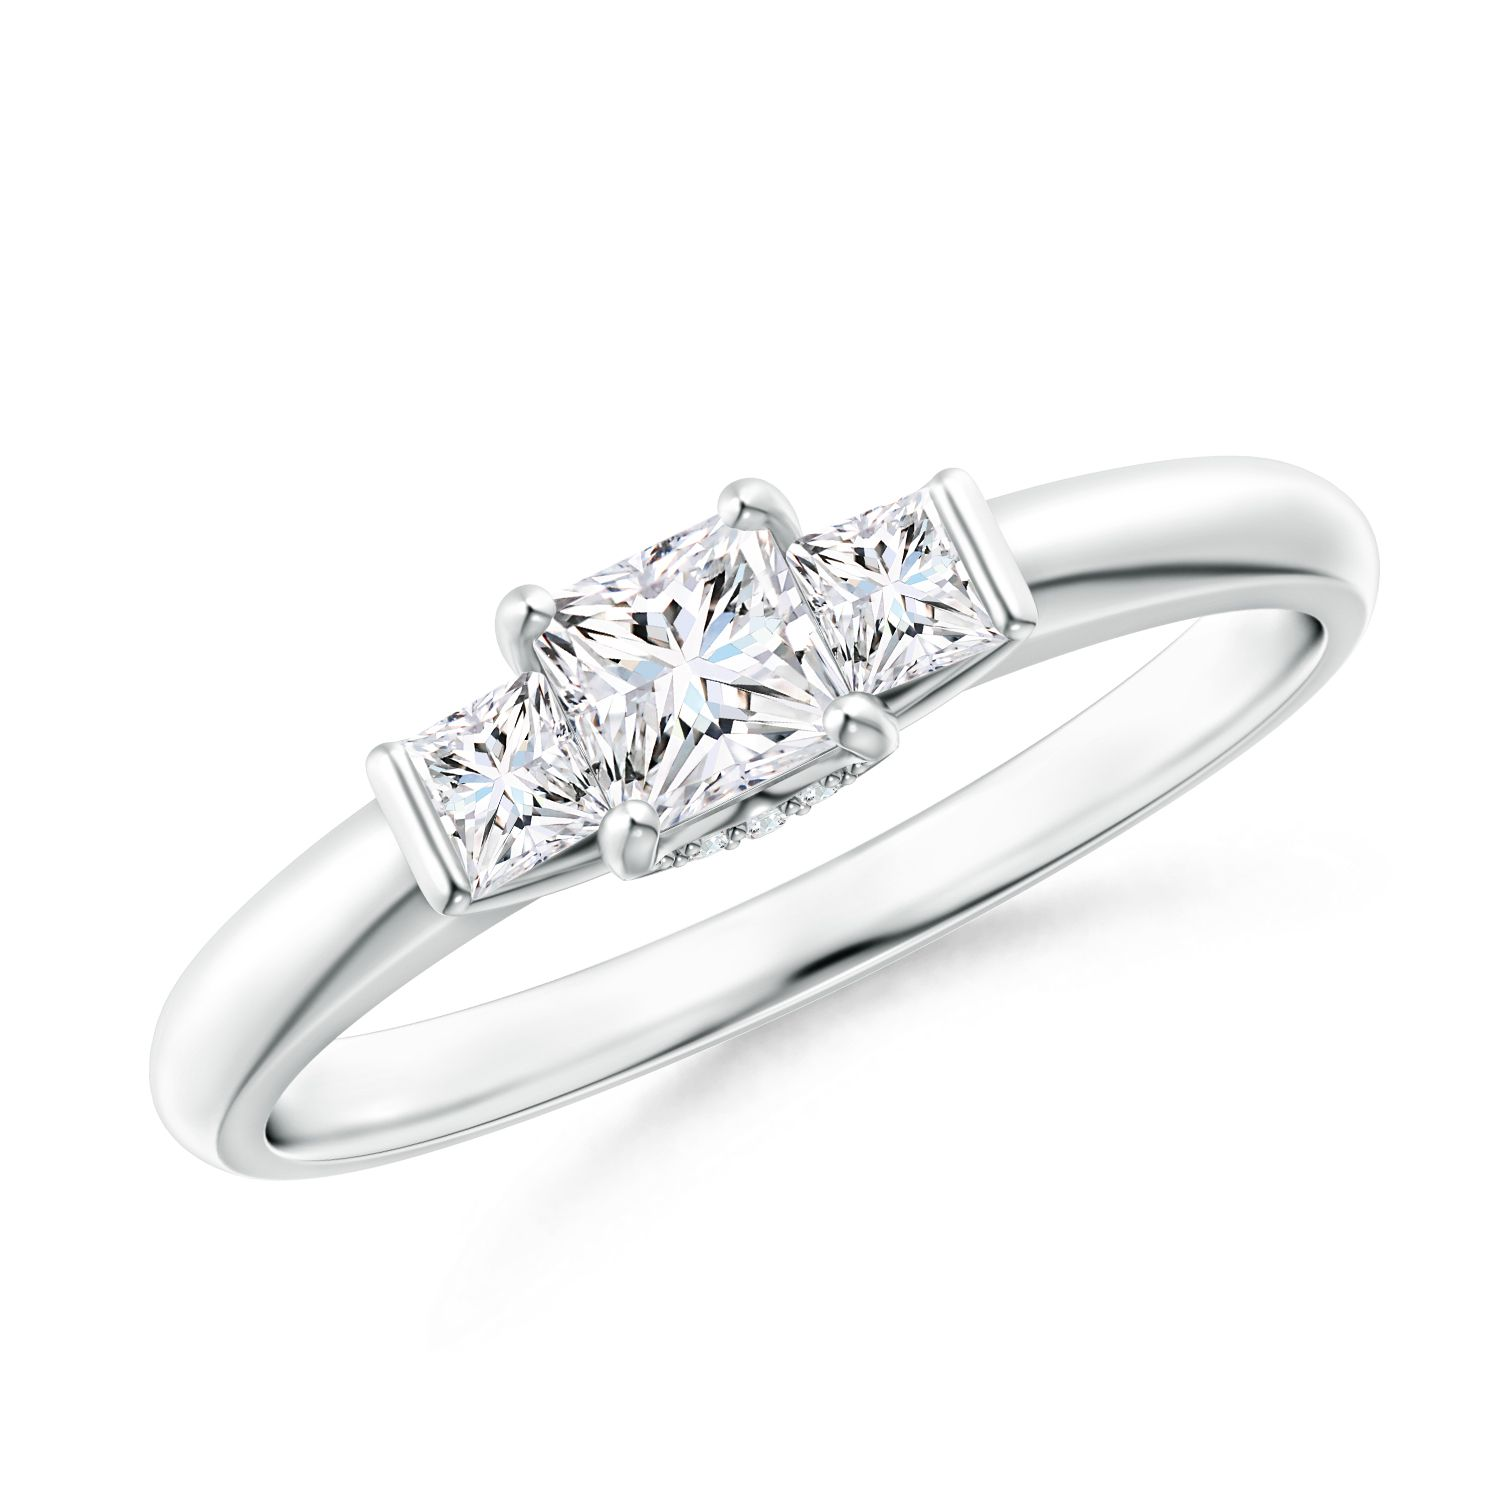 Angara Classic 3 Stone Princess Cut Diamond Engagement Ring